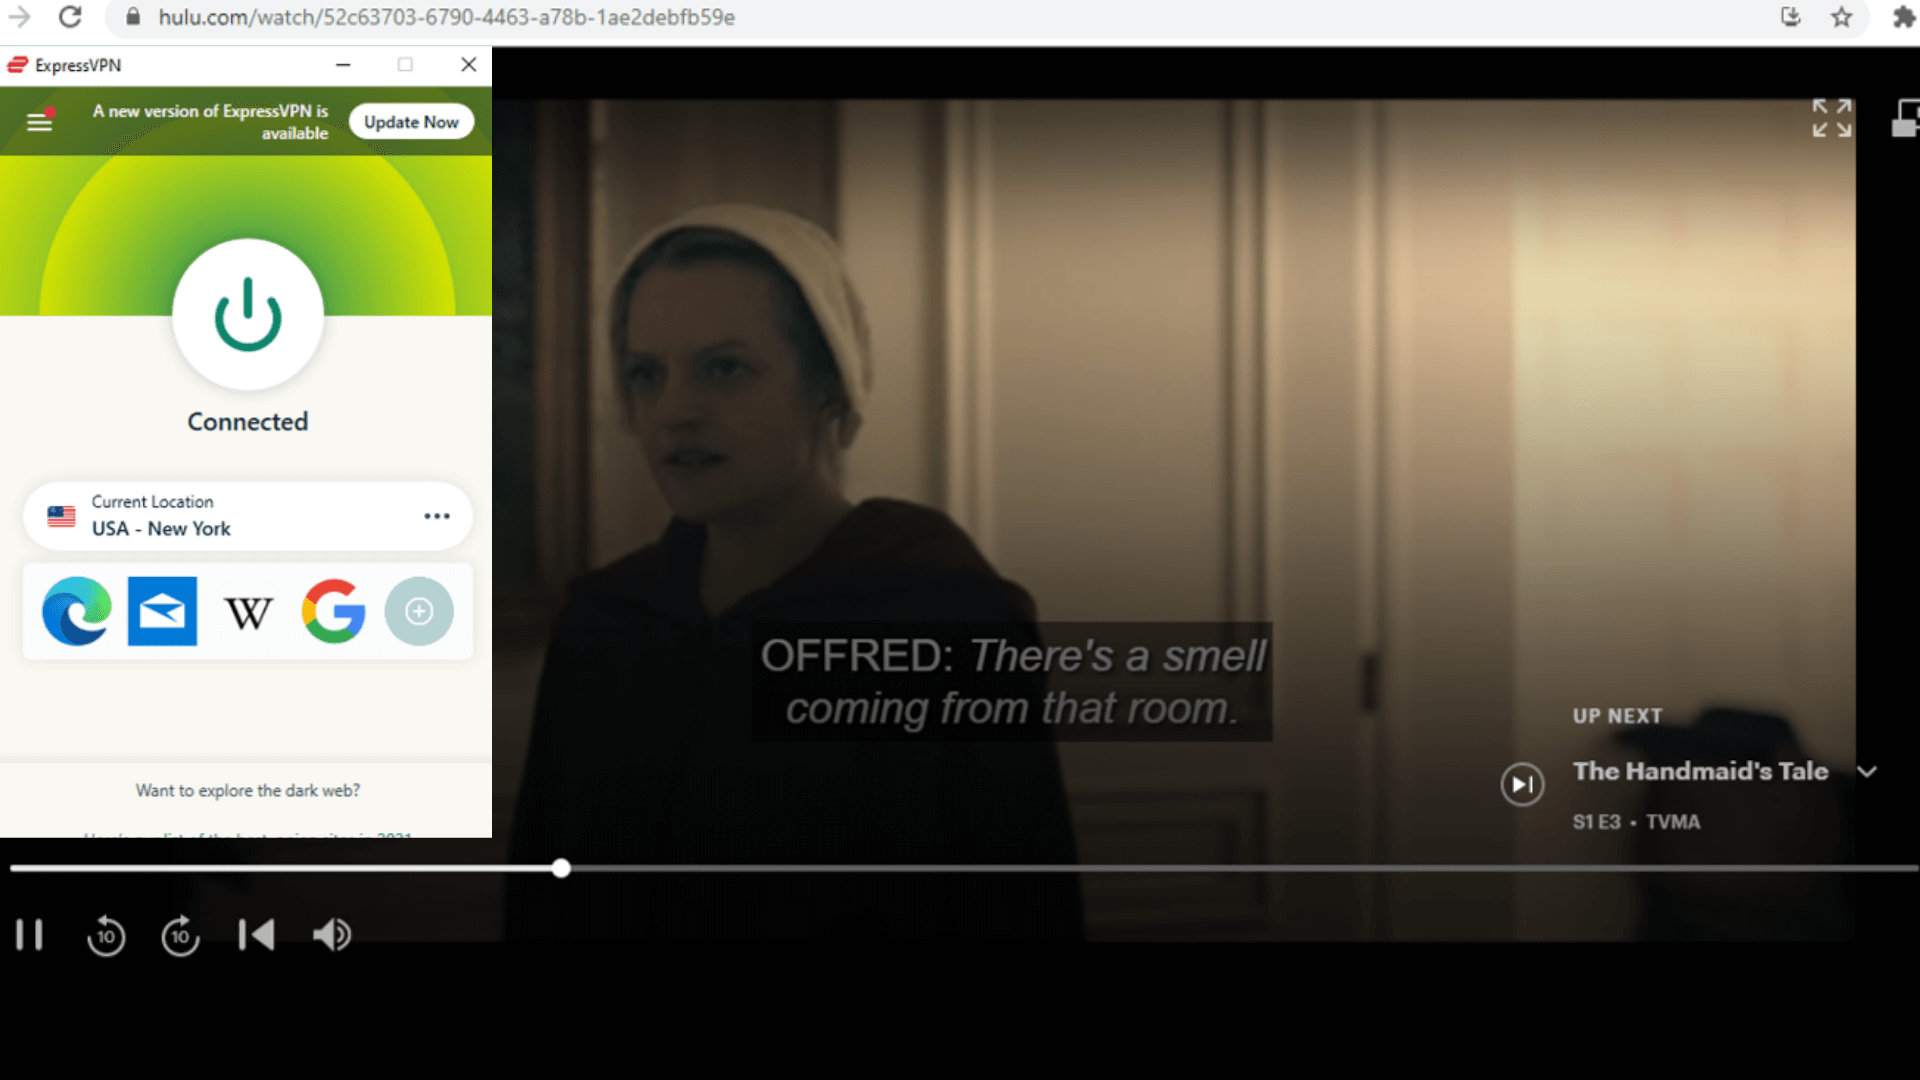 How to Sign up for Hulu in UK